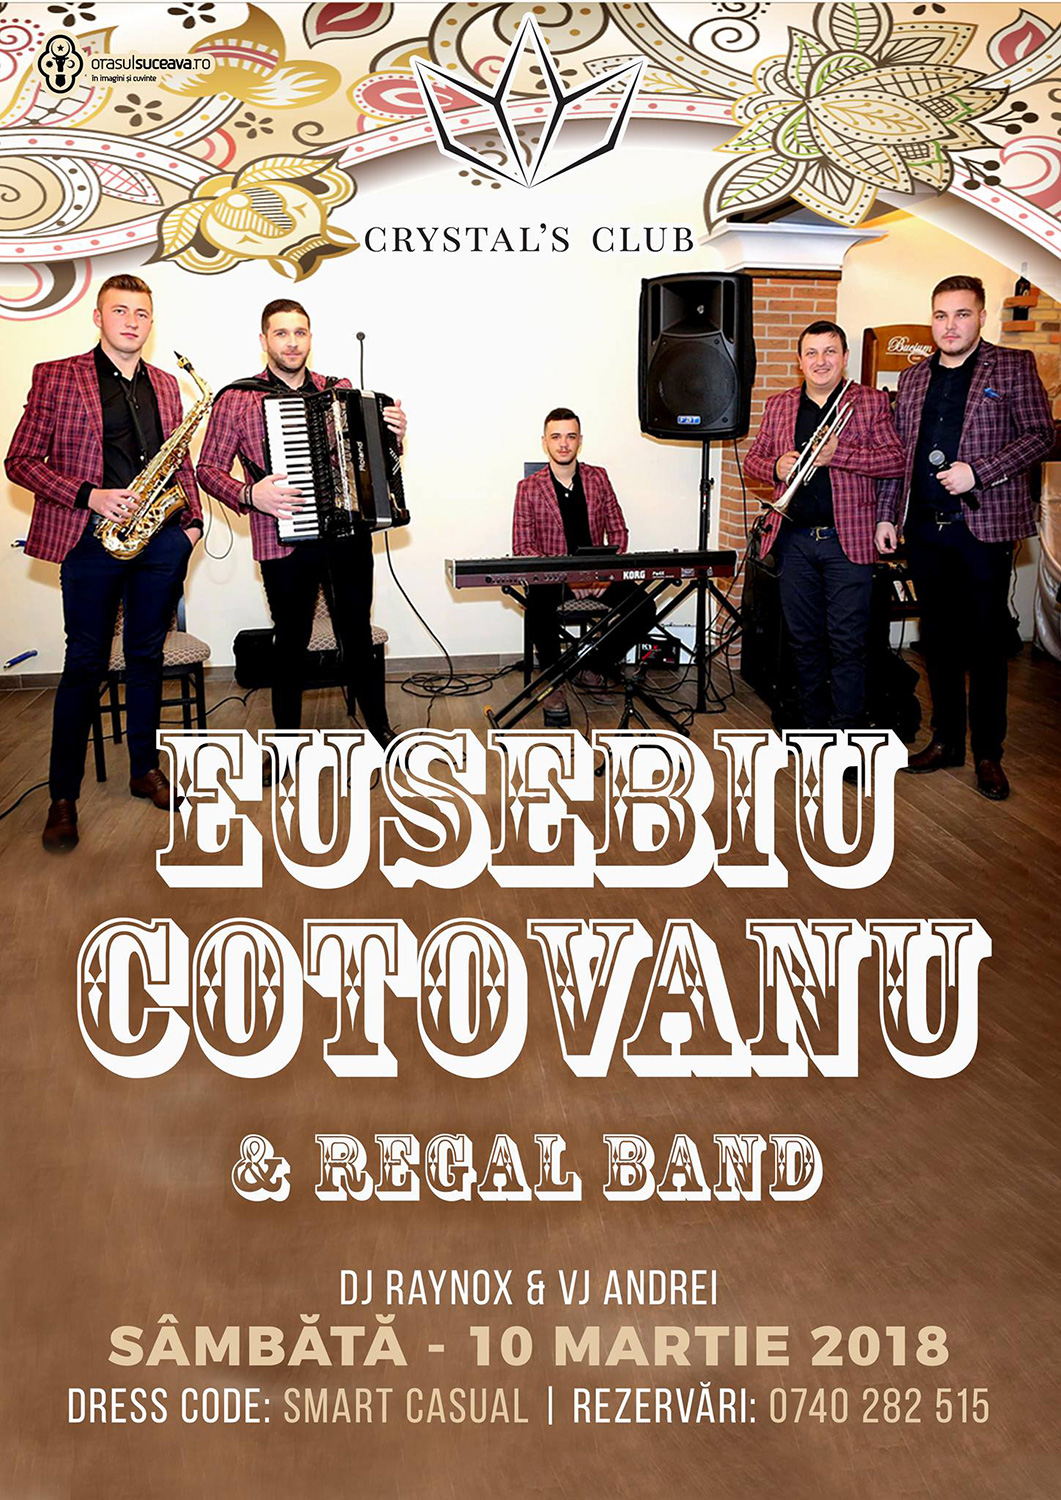 Eusebiu Coțovanu și Regal Band